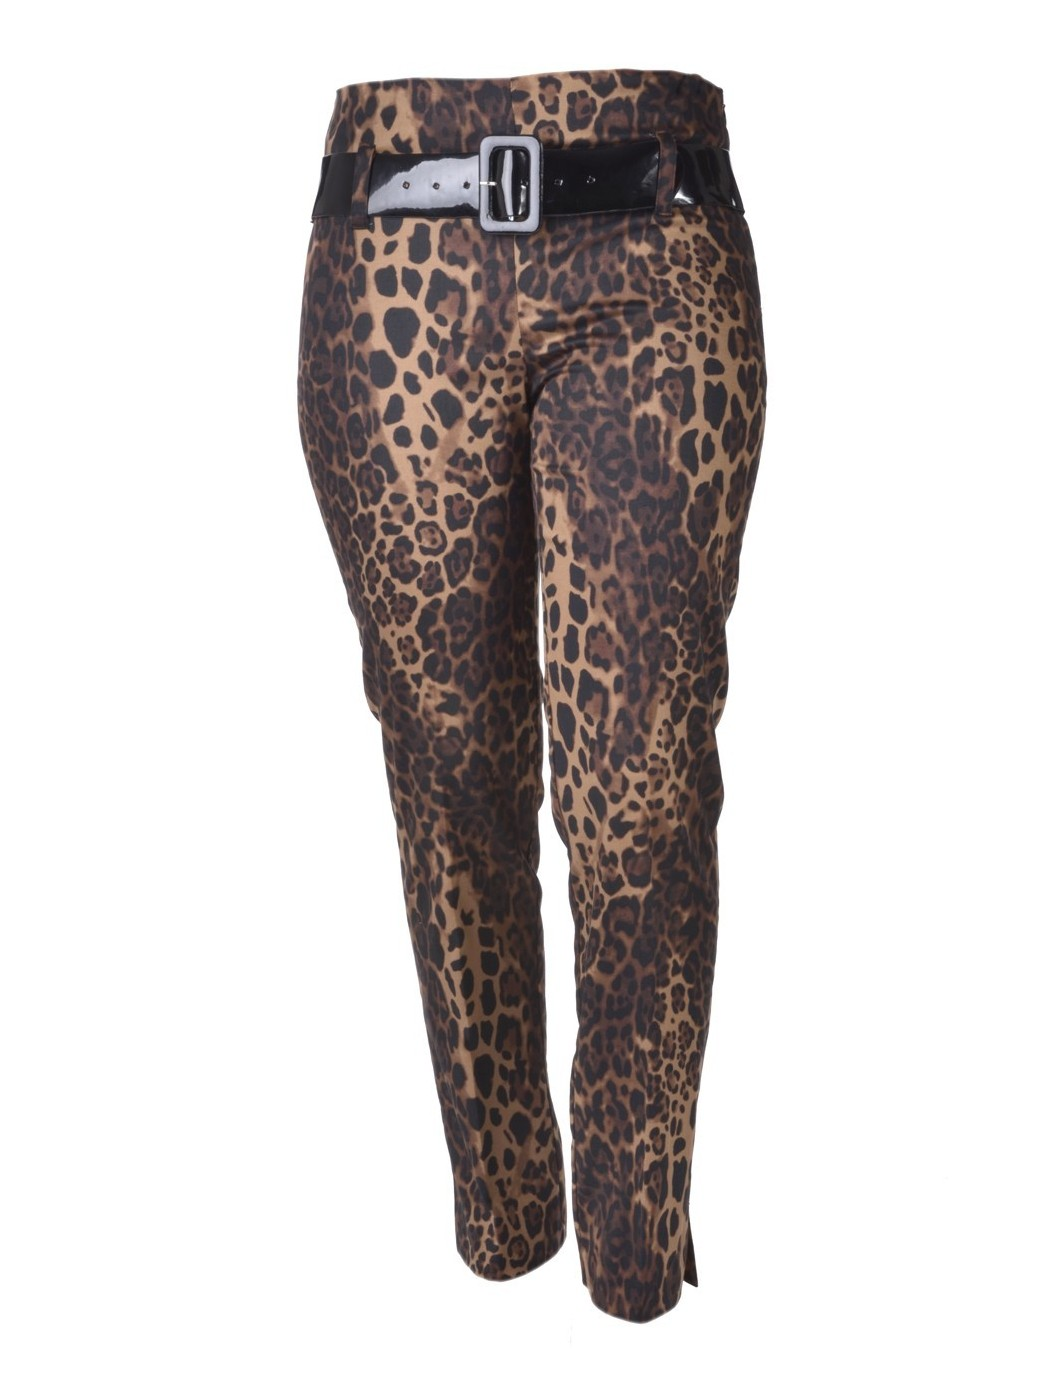 Animalier print sateen trousers.